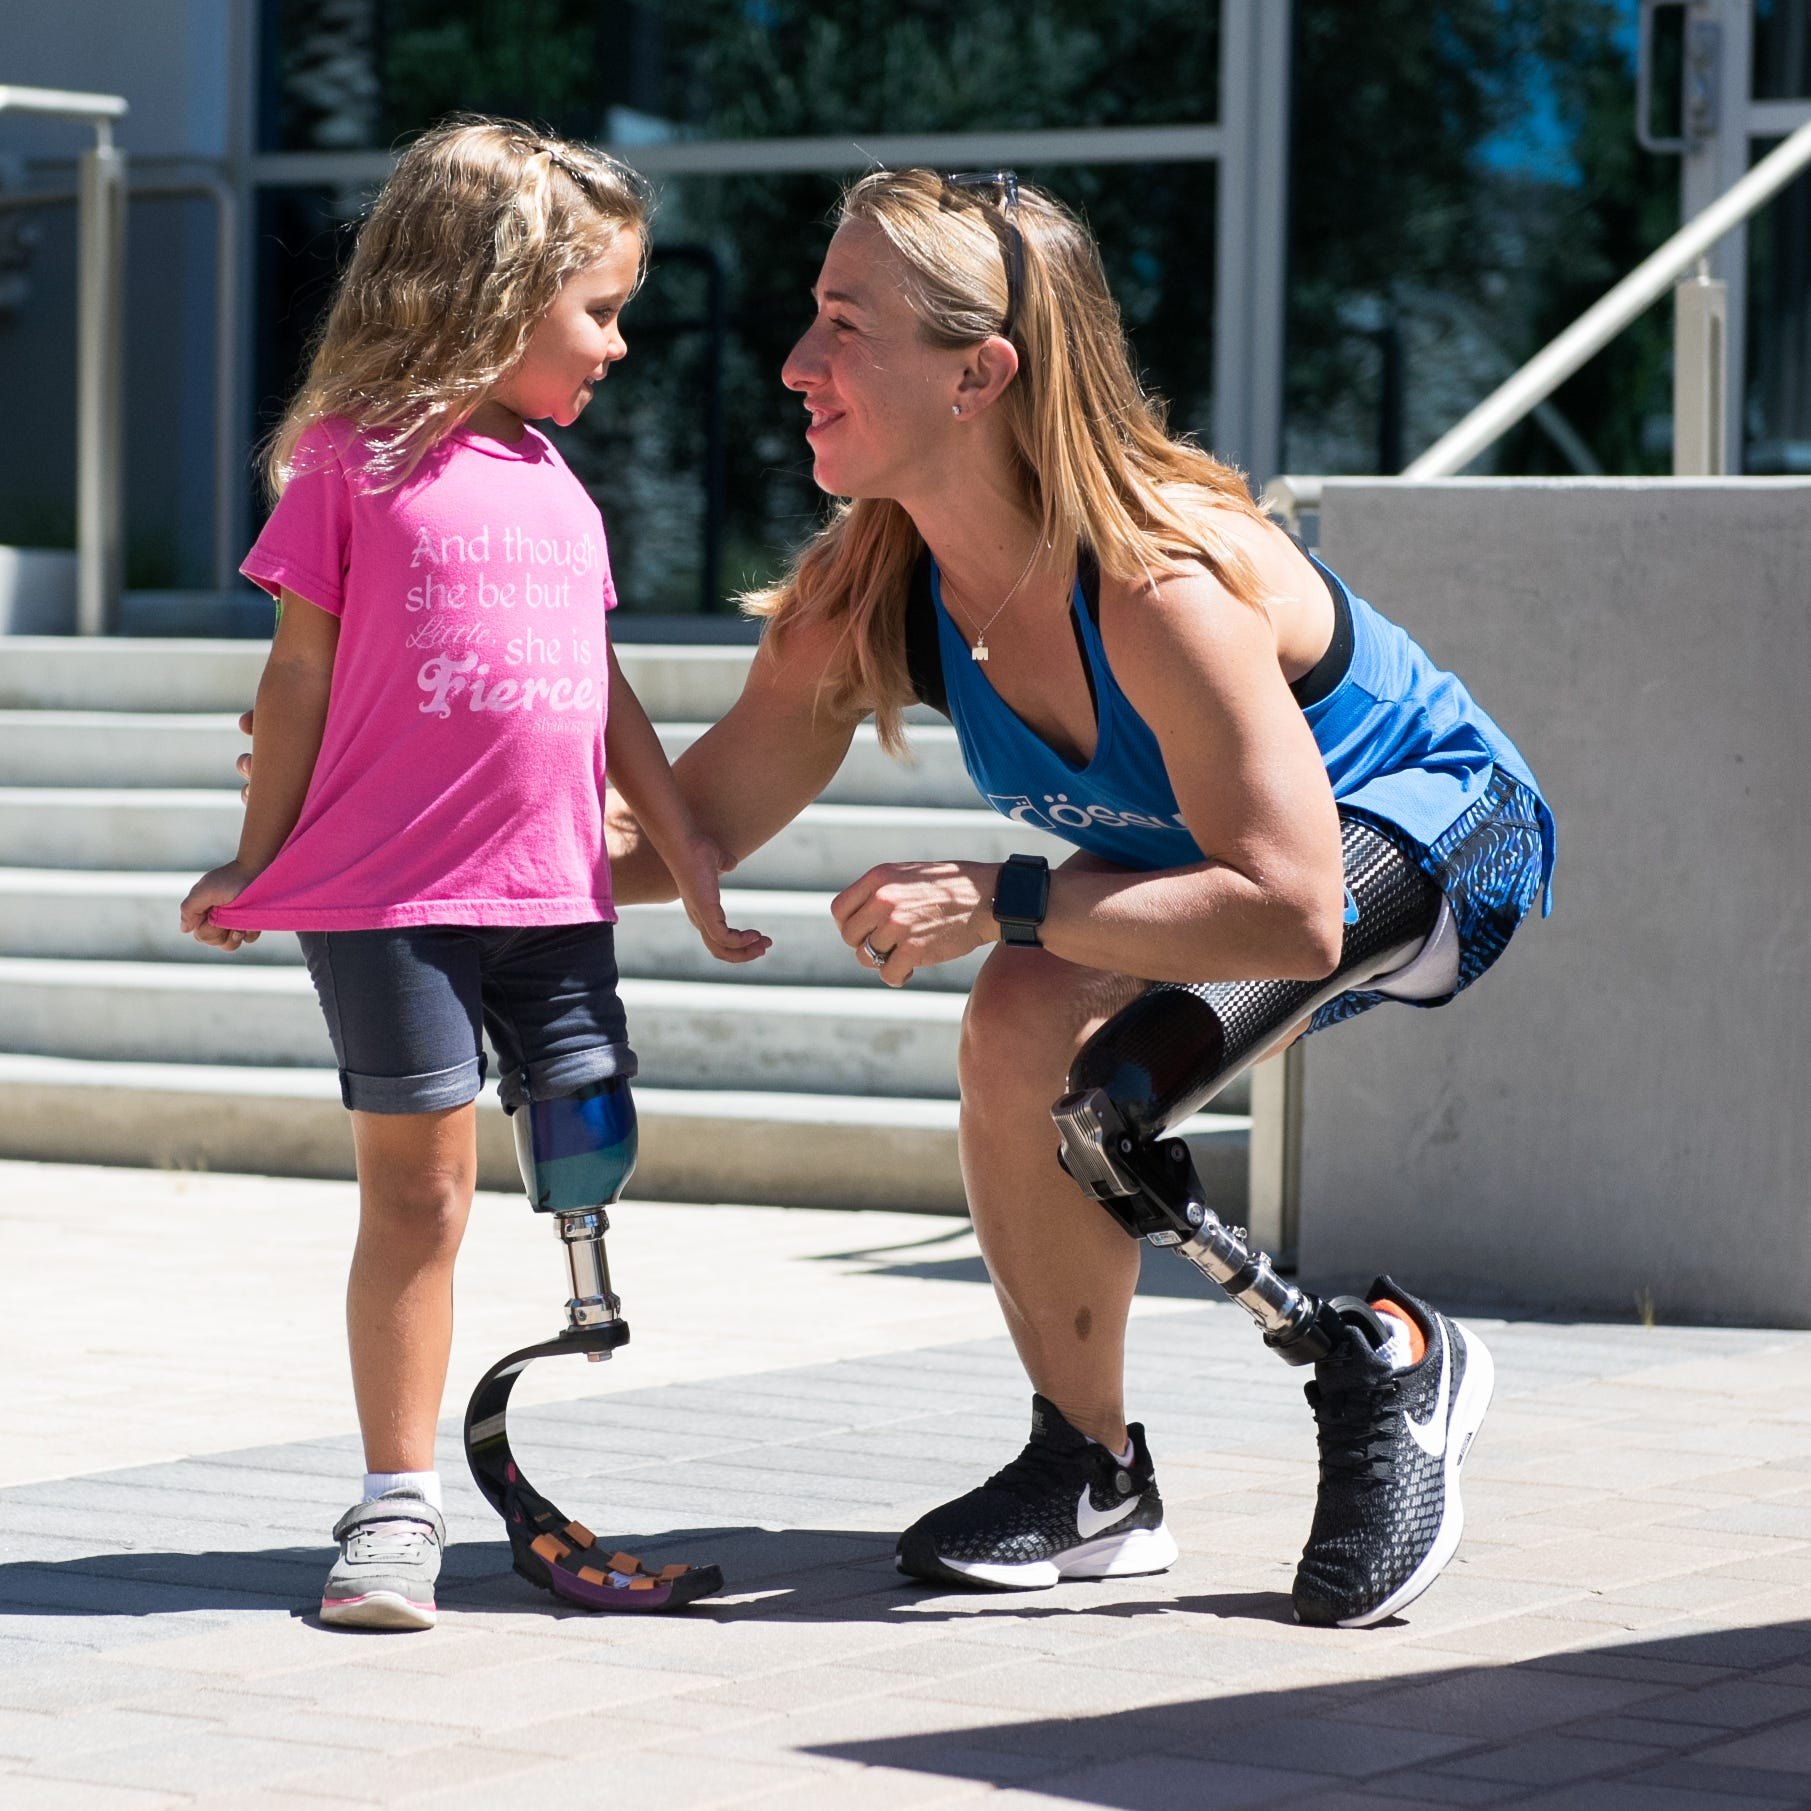 Sarah Reinertsen explains how she does the Ironman with a prosthetic leg